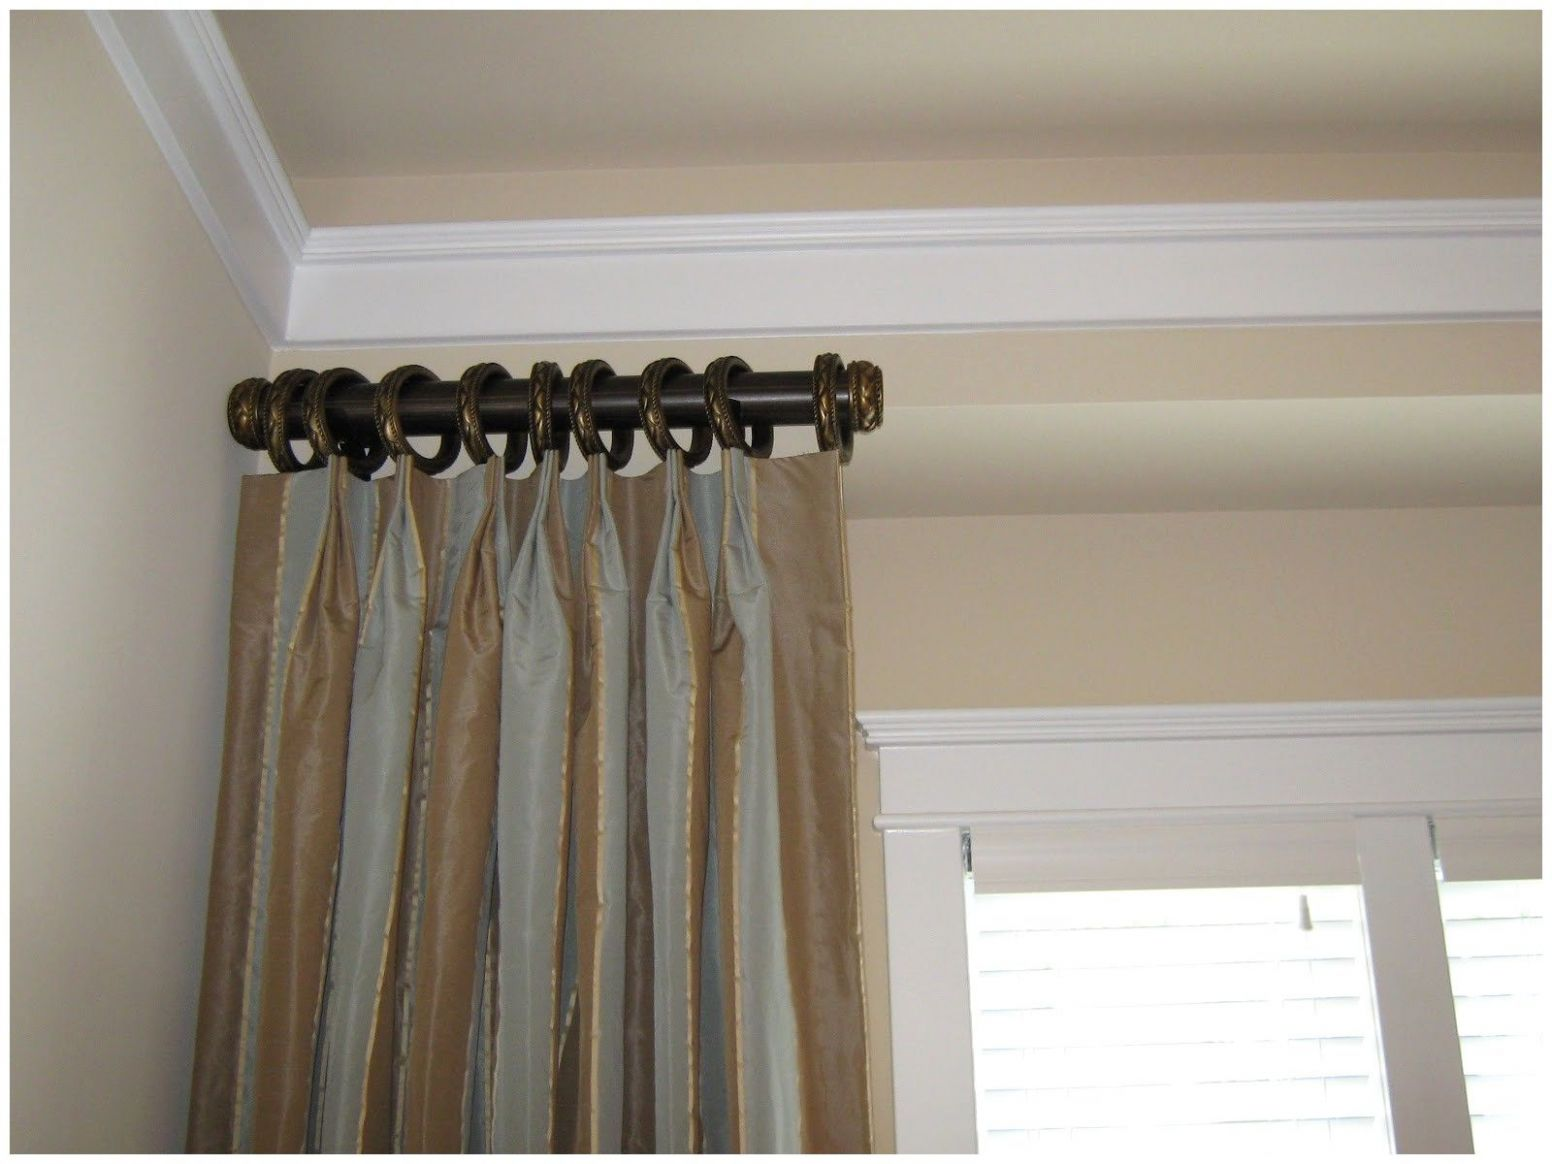 Crane Style | Small curtain rods, Short curtain rods, Long curtain ..